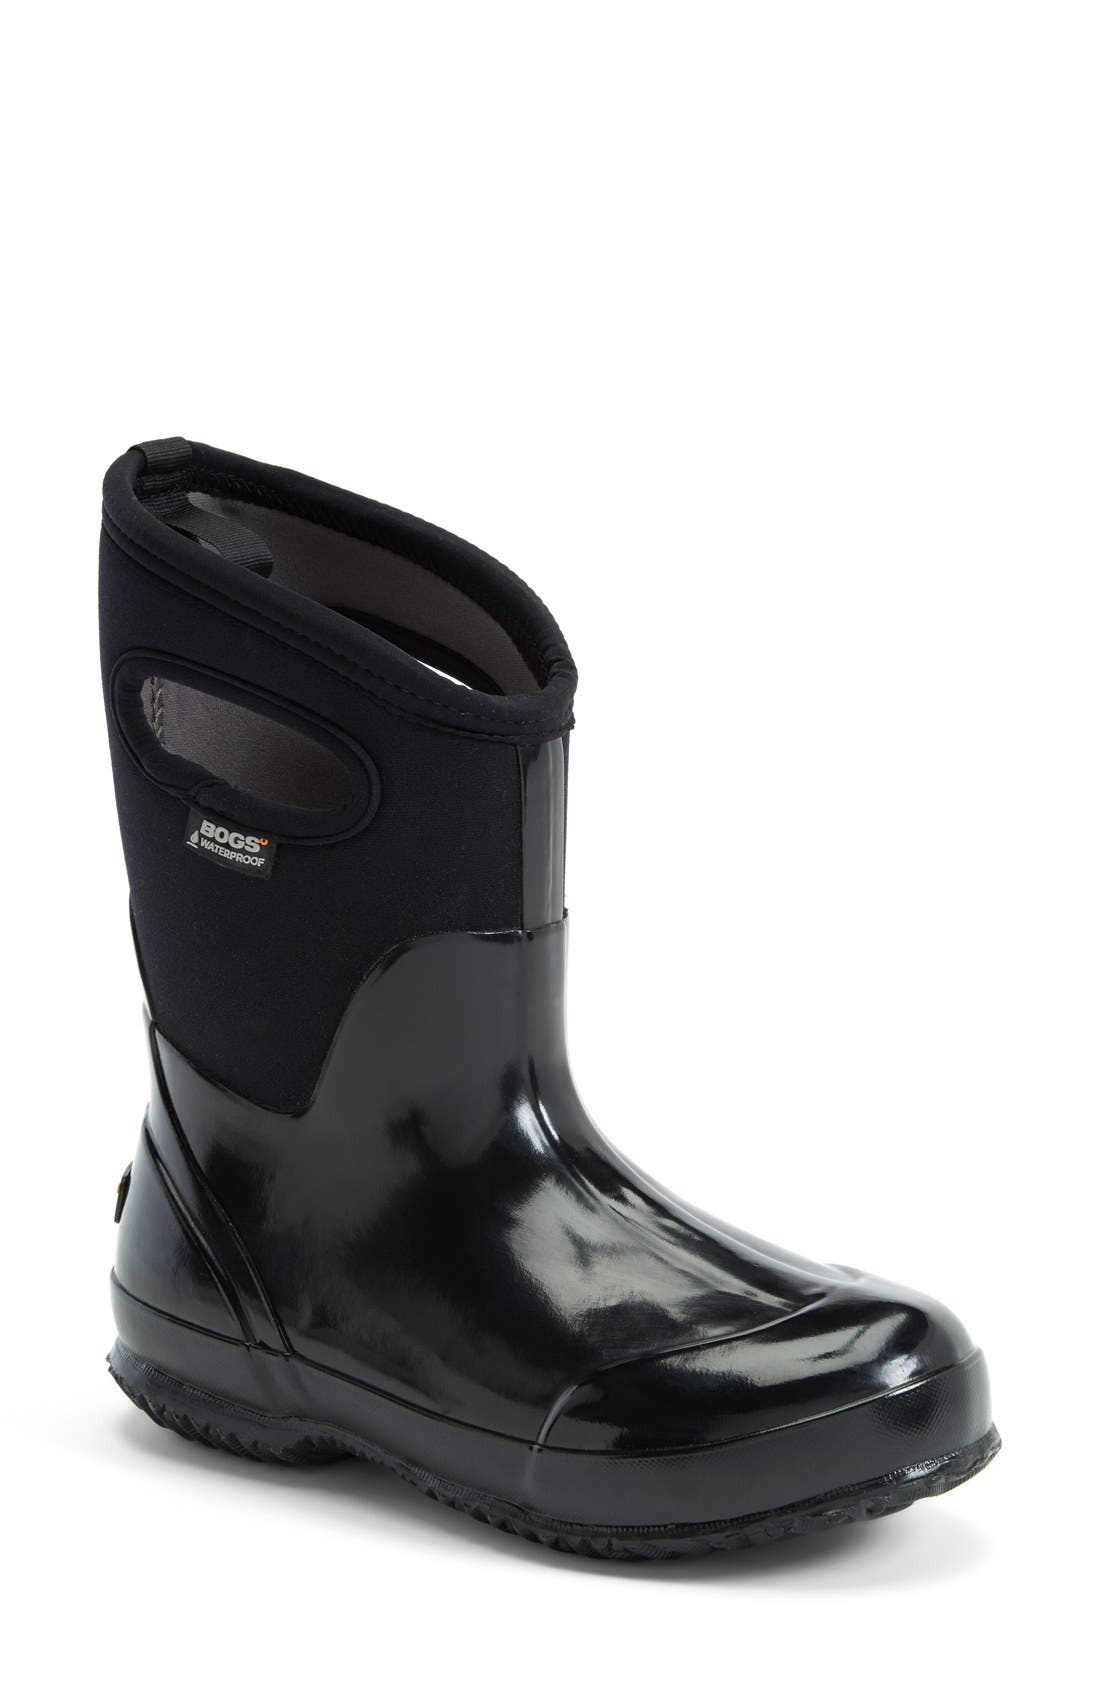 BOGS 'Classic' Mid High Waterproof Snow Boot with